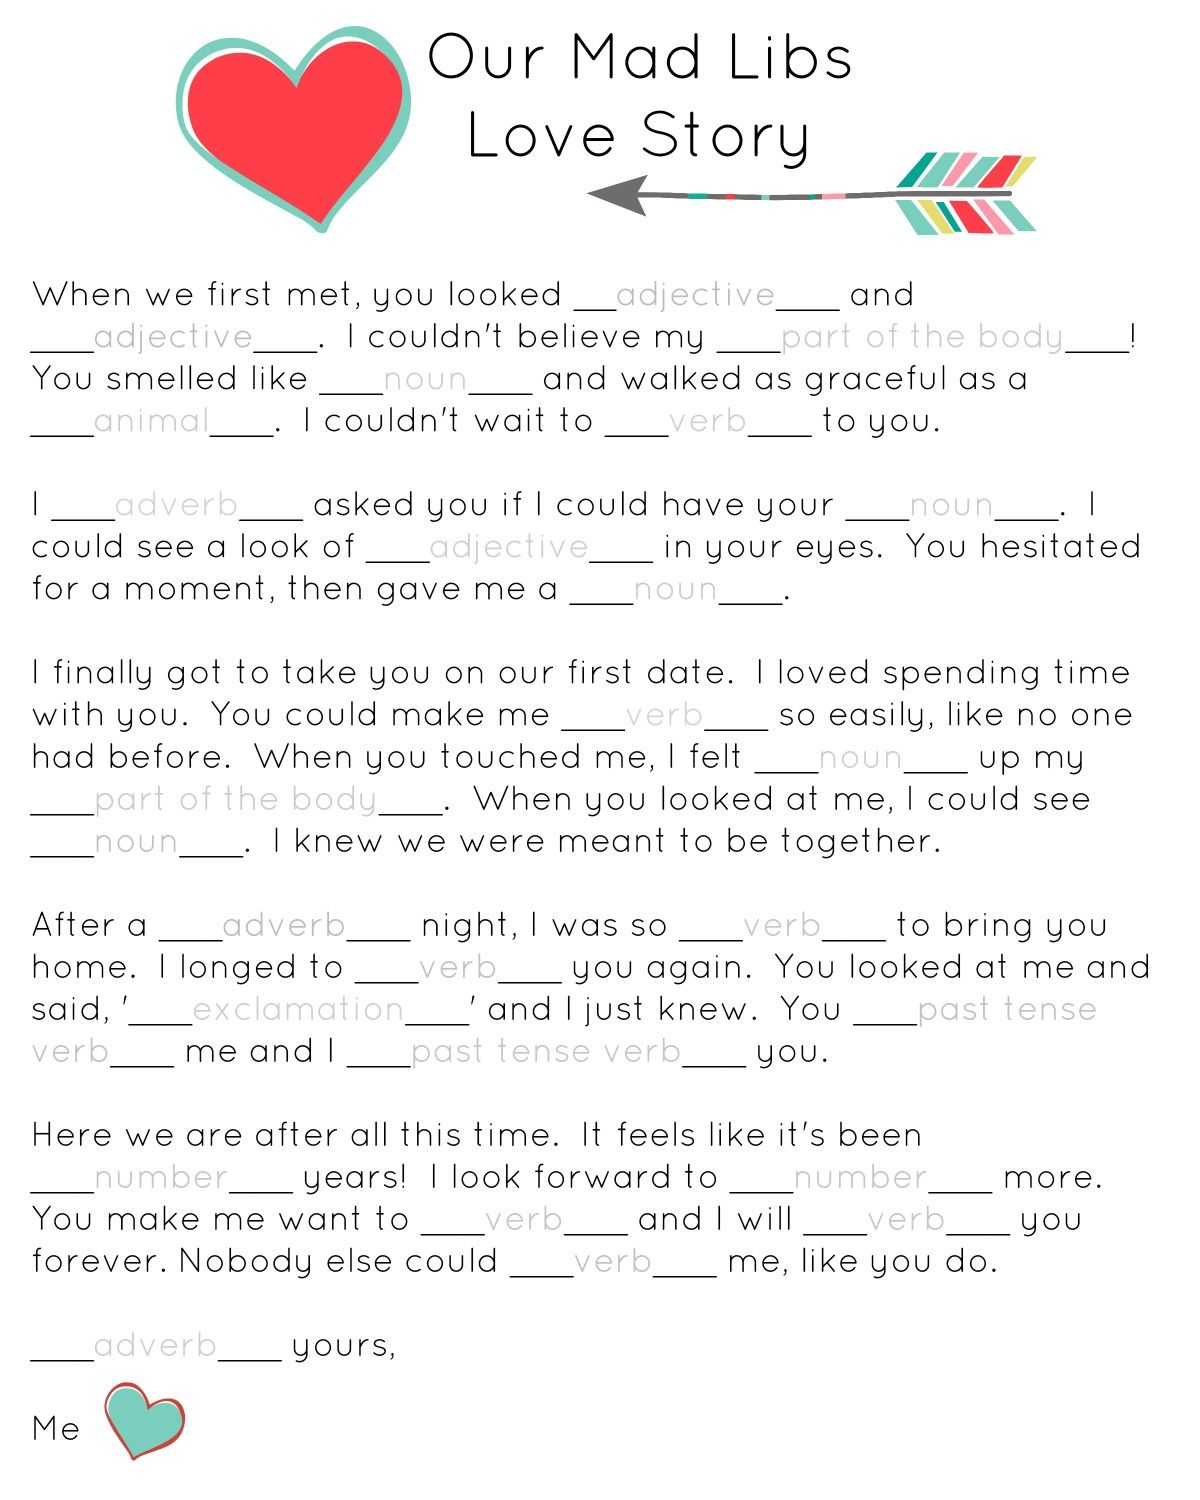 Pin By Rachel Padilla On Mad Libs For Adults